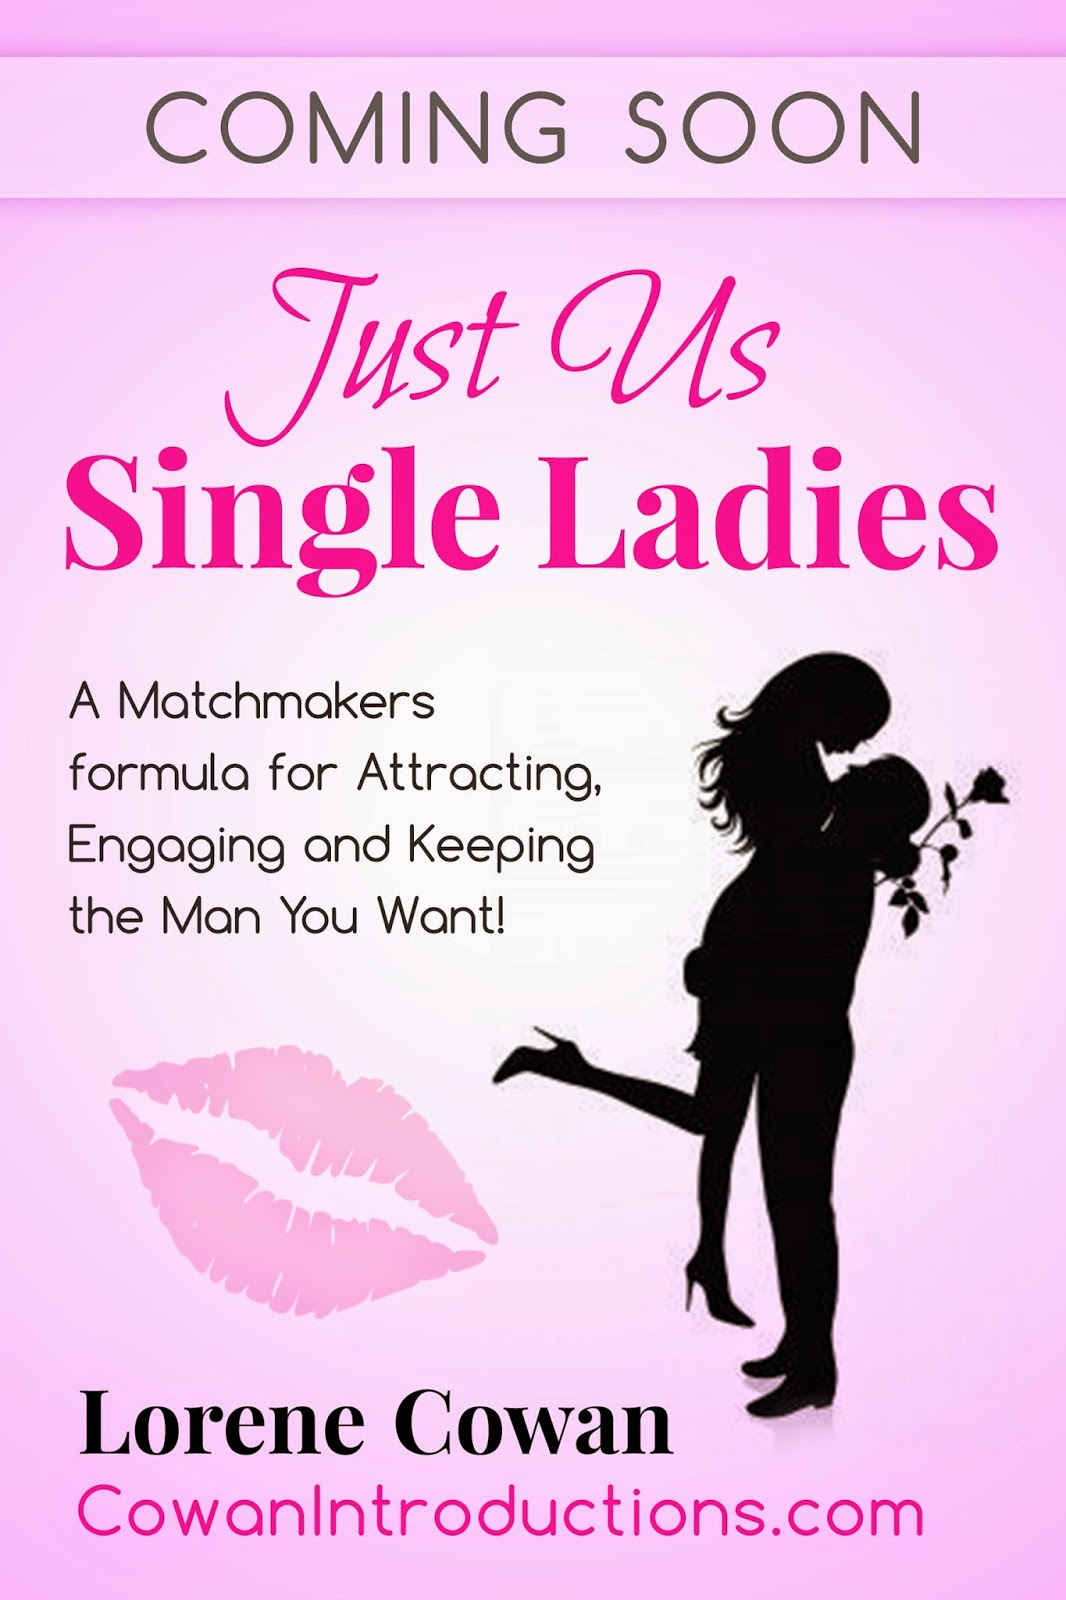 single women in cowan Cowan introductions is seeking beautiful, intelligent, accomplished young women with outstanding personalities, to match with our elite clientele.